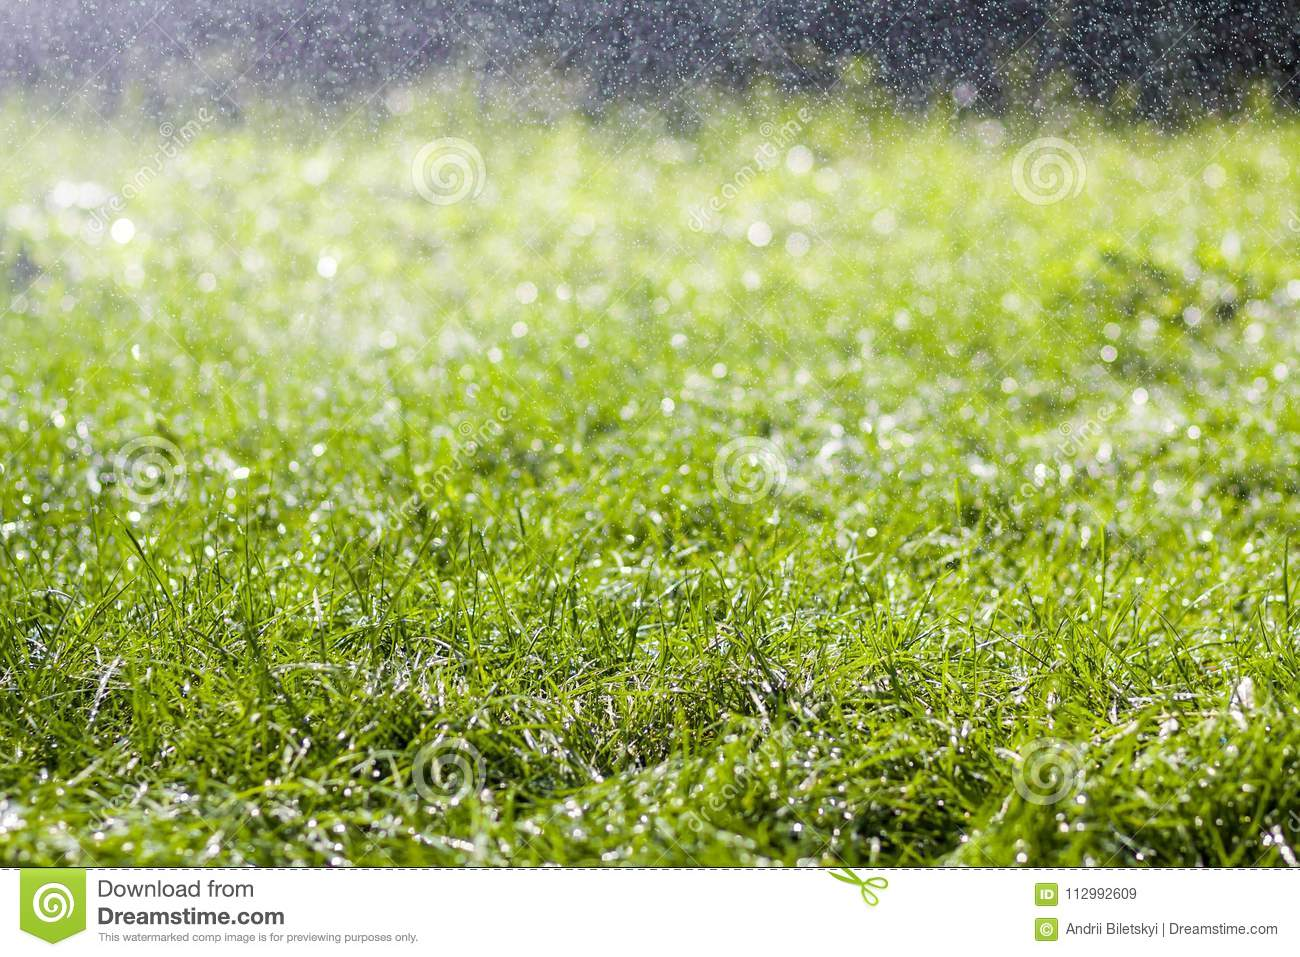 Green fresh grass with falling drops of morning rain water. Beautiful summer background with bokeh and blurred background. Low dep